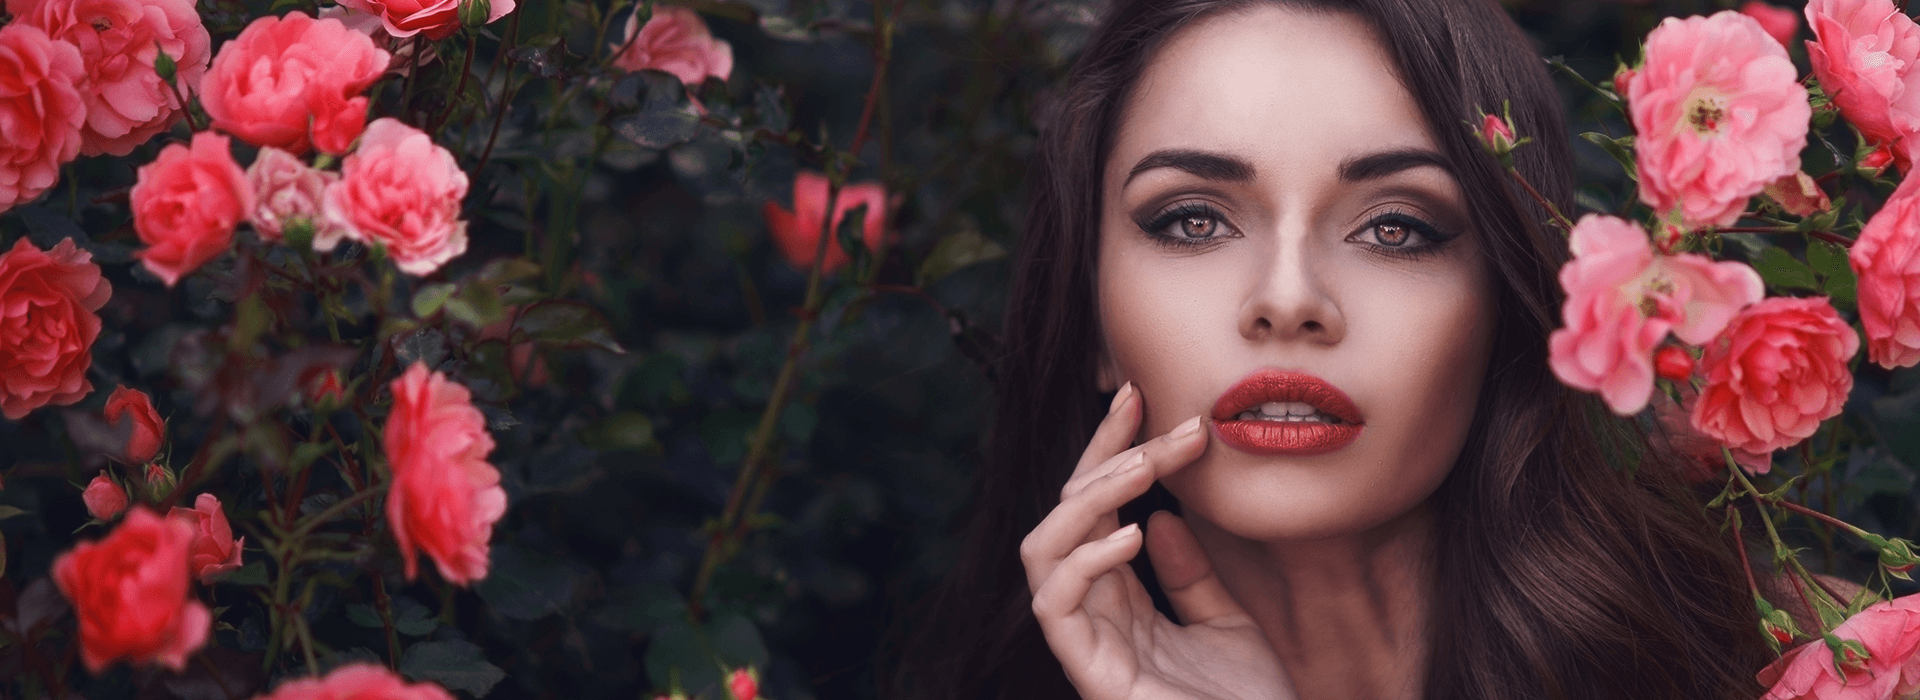 Lip Fillers (Injections) - Lip Enhancement Perth | MIRA Clinic